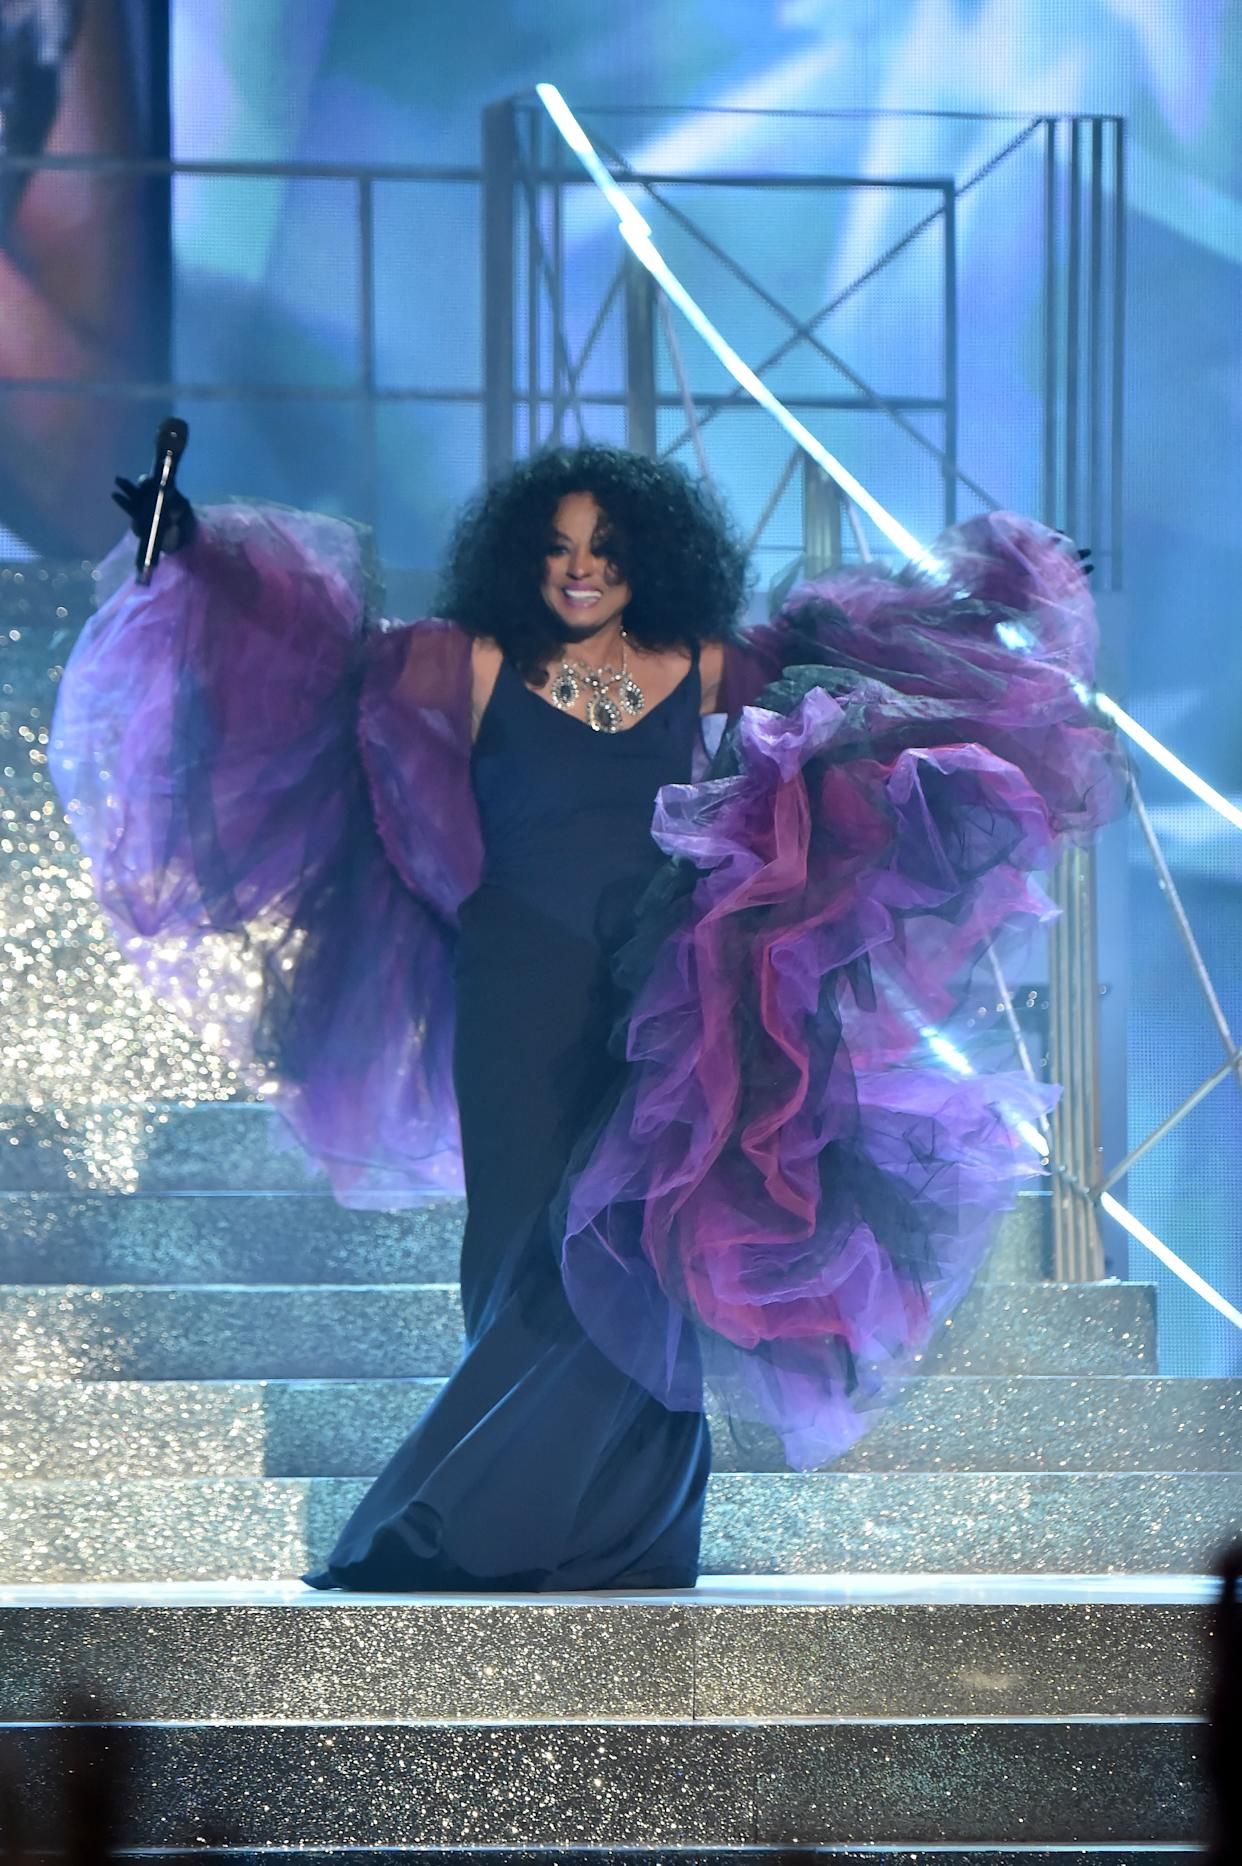 LOS ANGELES, CA - NOVEMBER 19: Diana Ross onstage during the 2017 American Music Awards at Microsoft Theater on November 19, 2017 in Los Angeles, California. (Photo by Jeff Kravitz/AMA2017/FilmMagic for dcp)